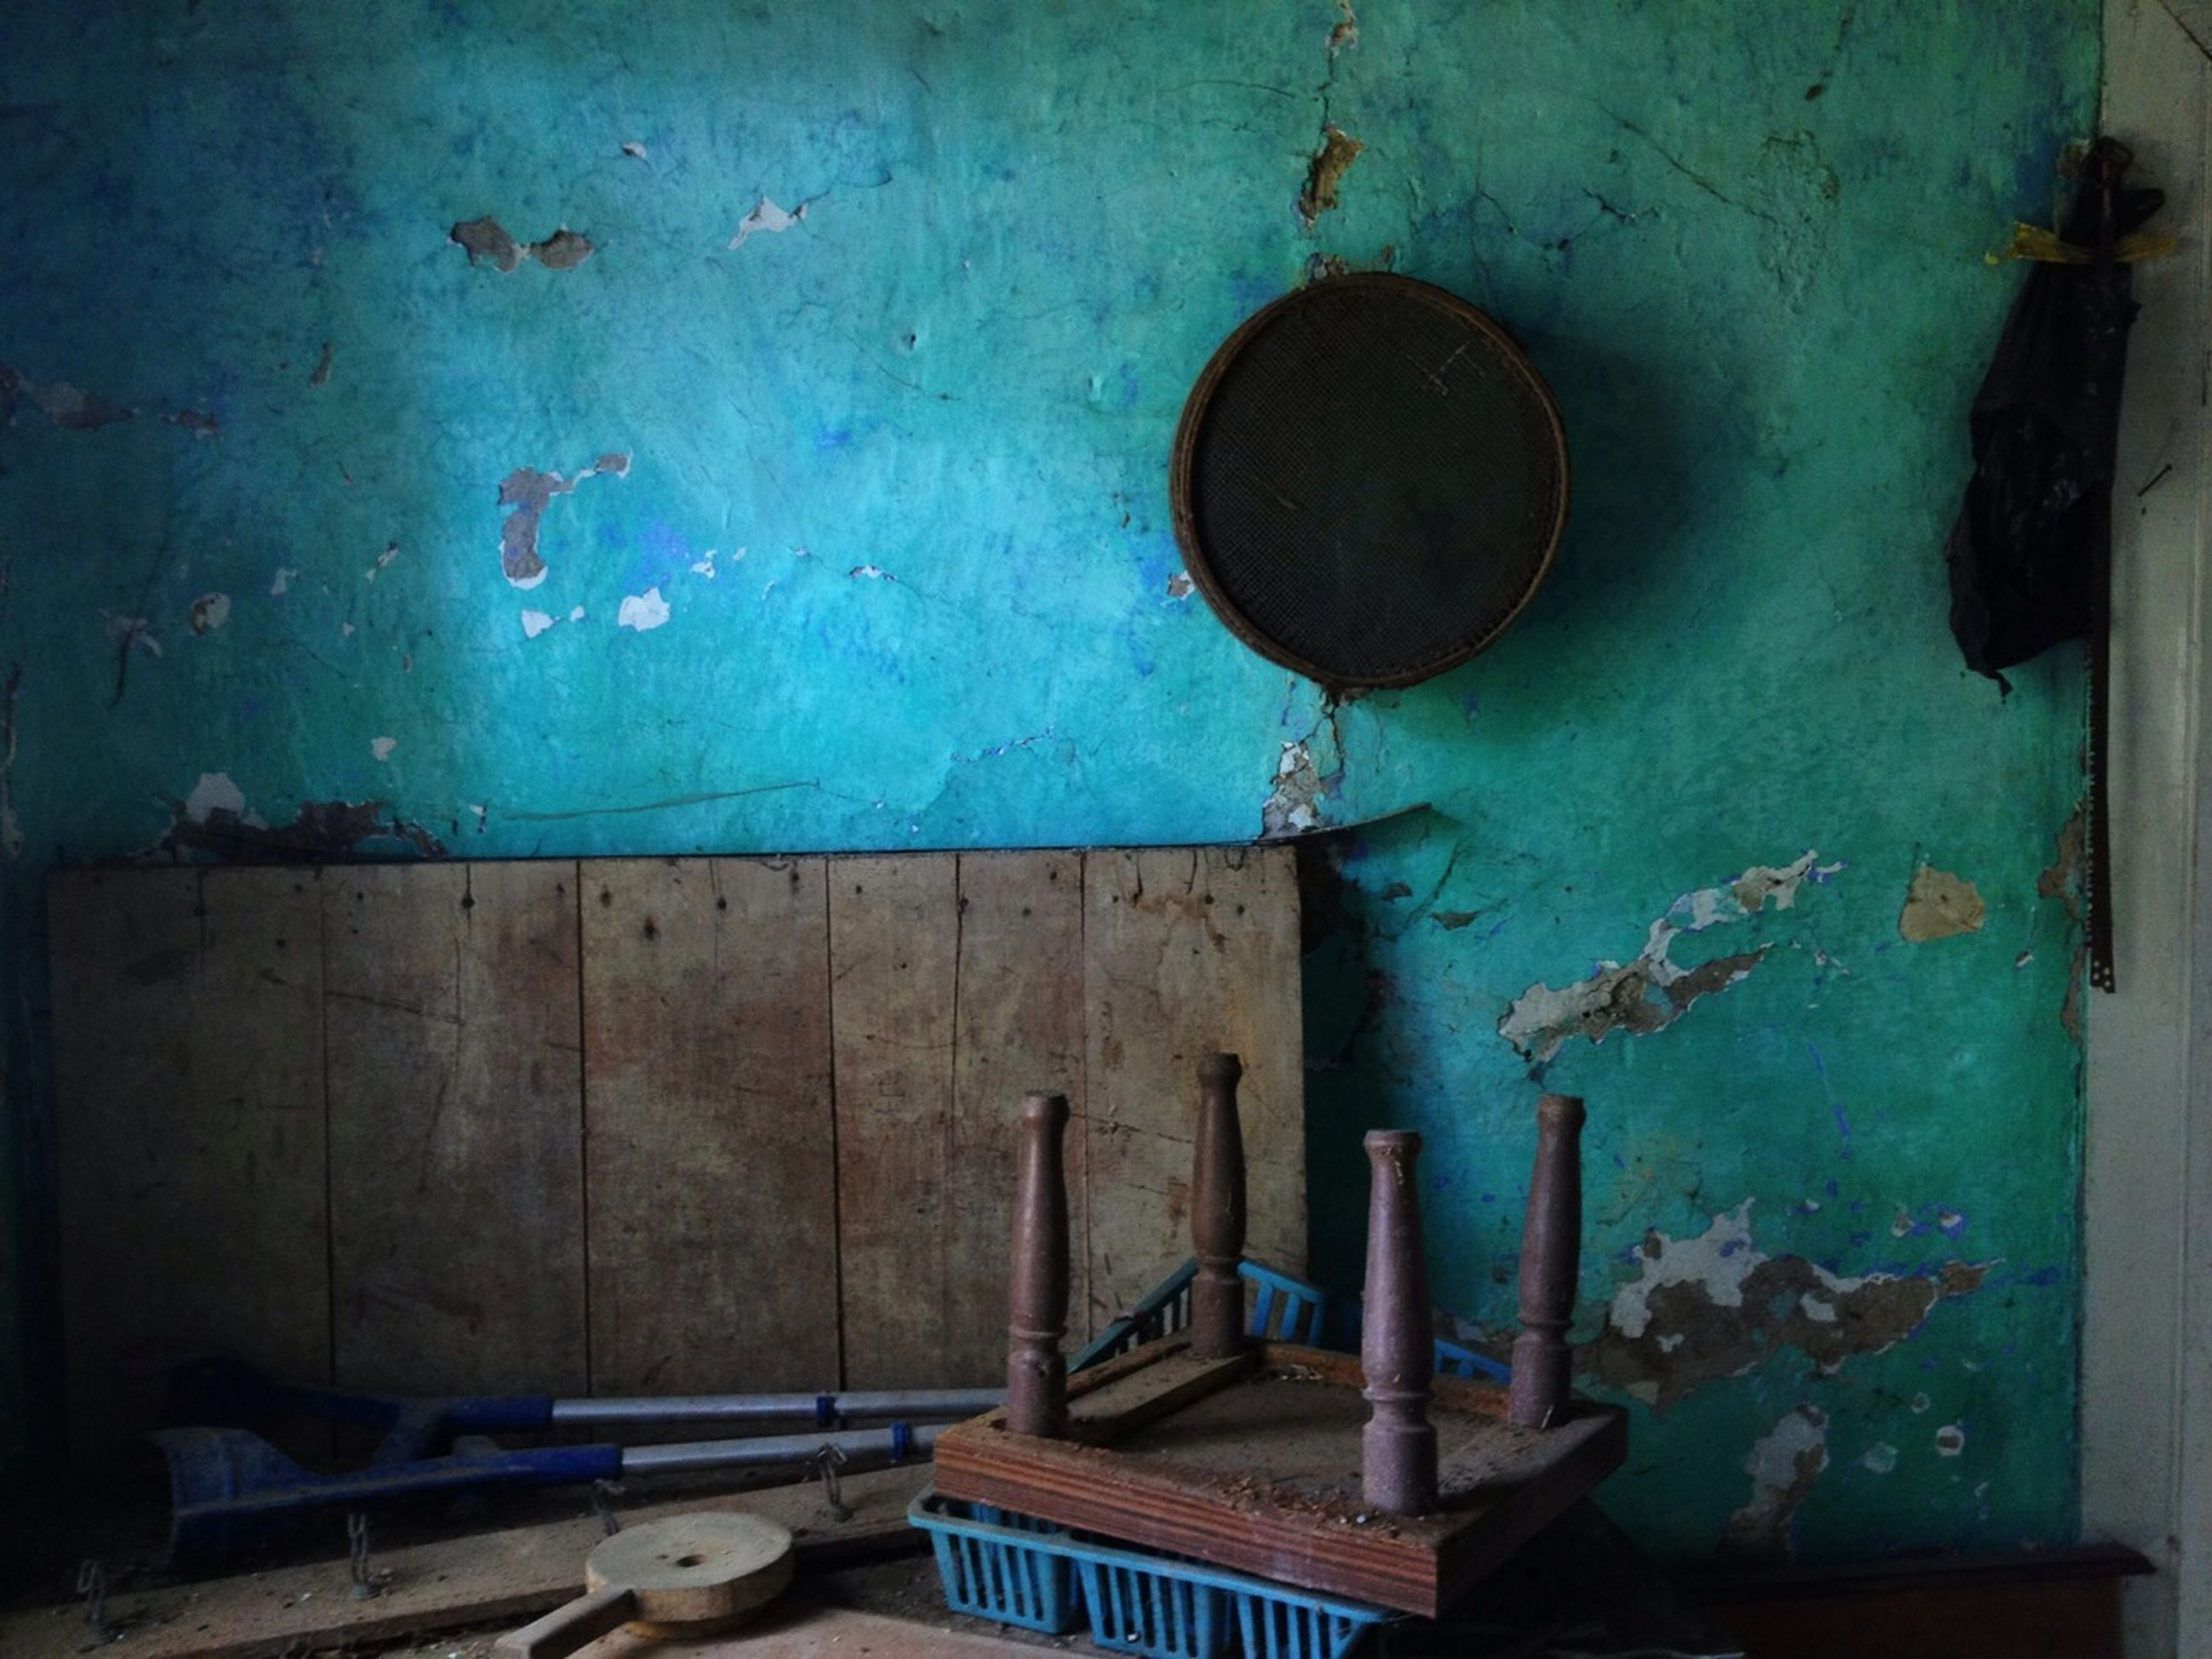 indoors, abandoned, old, wall - building feature, built structure, wall, deterioration, damaged, run-down, architecture, obsolete, door, messy, weathered, no people, metal, house, blue, absence, close-up